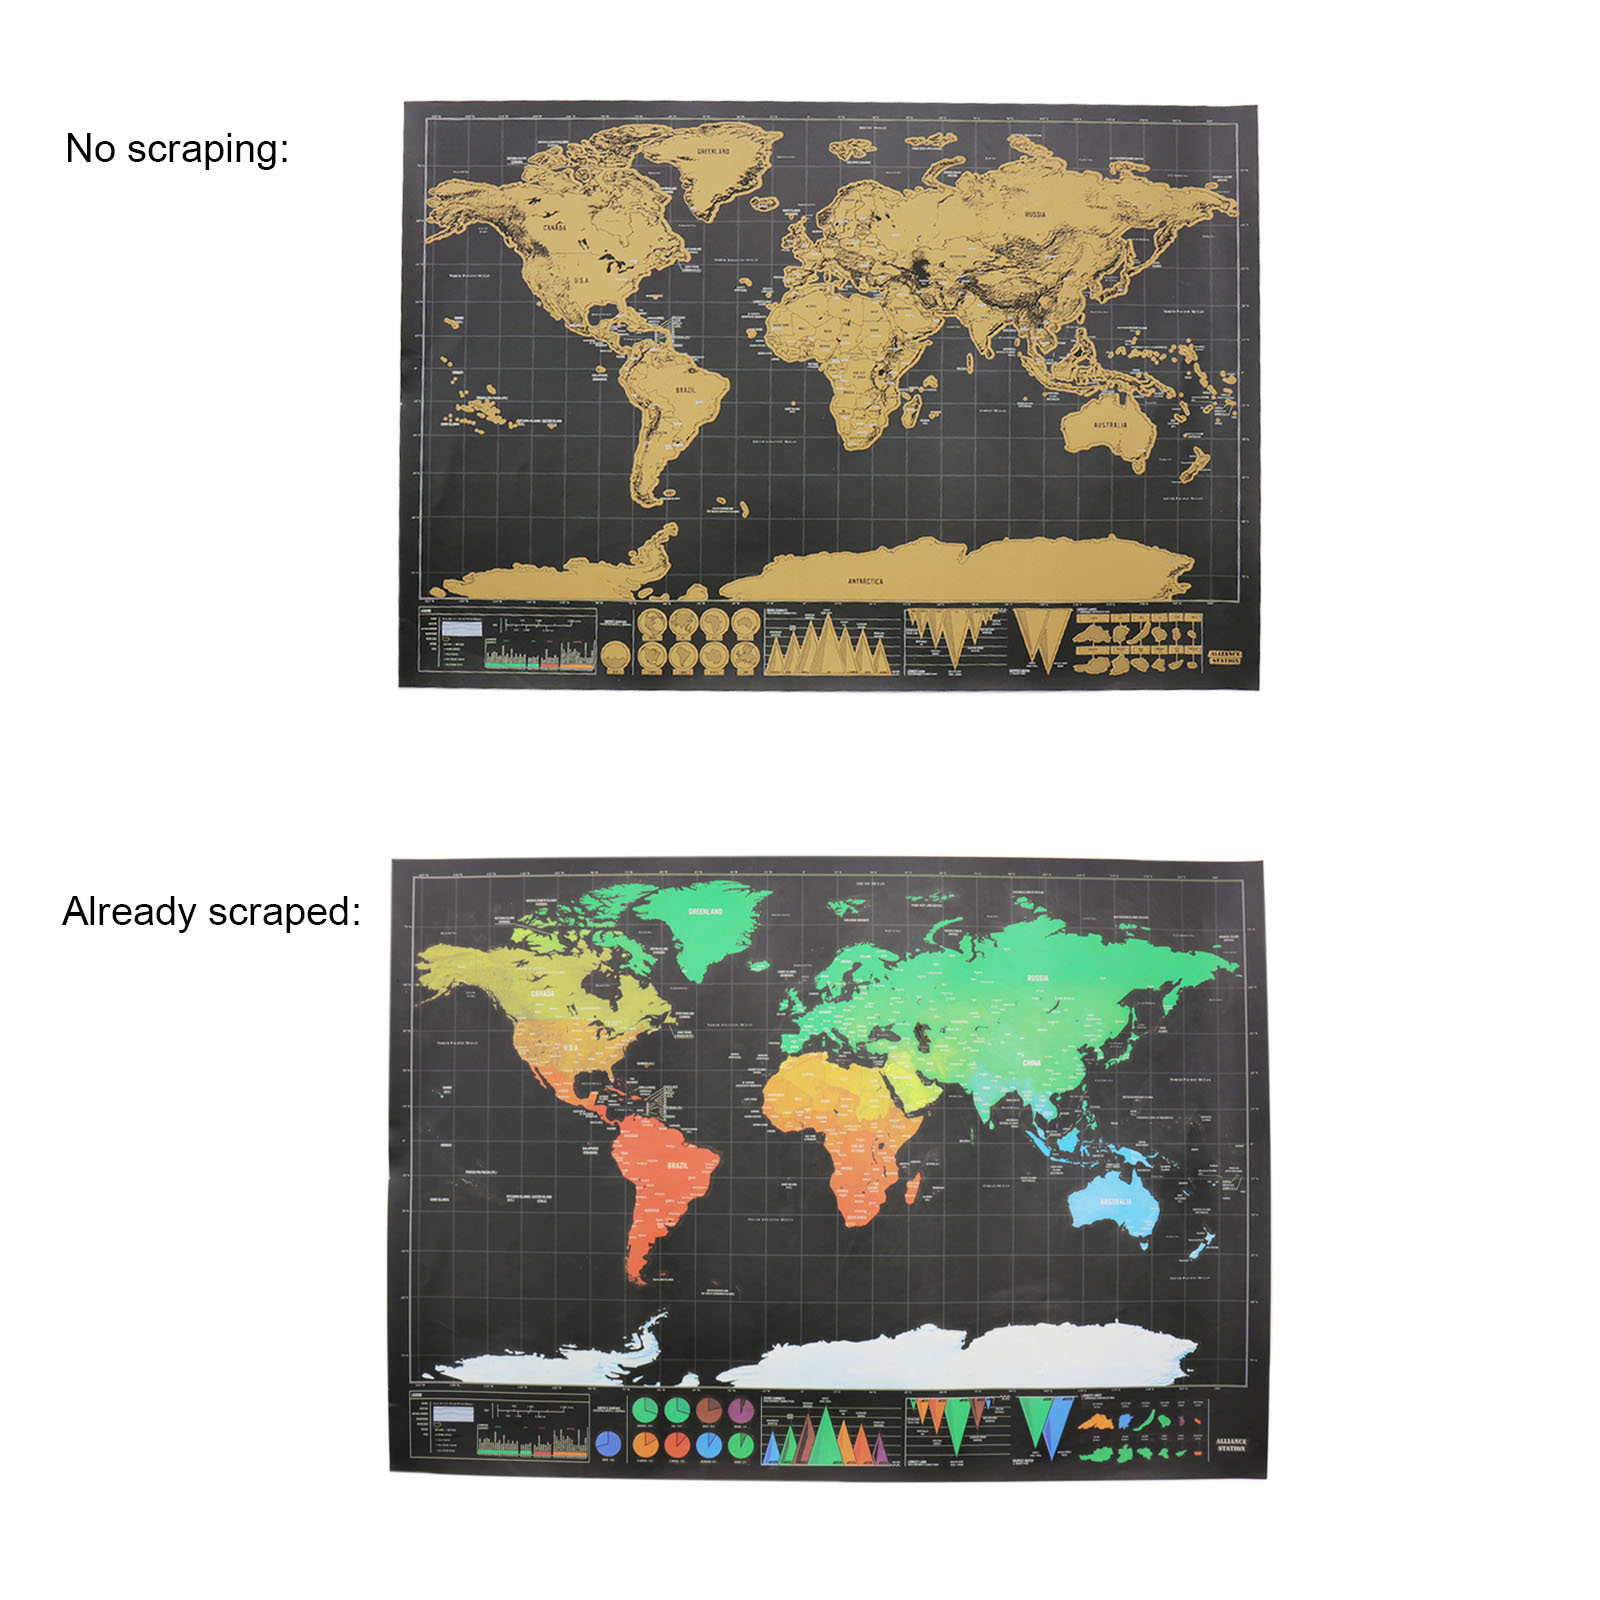 New Scratch Map New Design Black Deluxe Maps Travelwr Scratch Off World Best Gift for Education School Office Supplies image